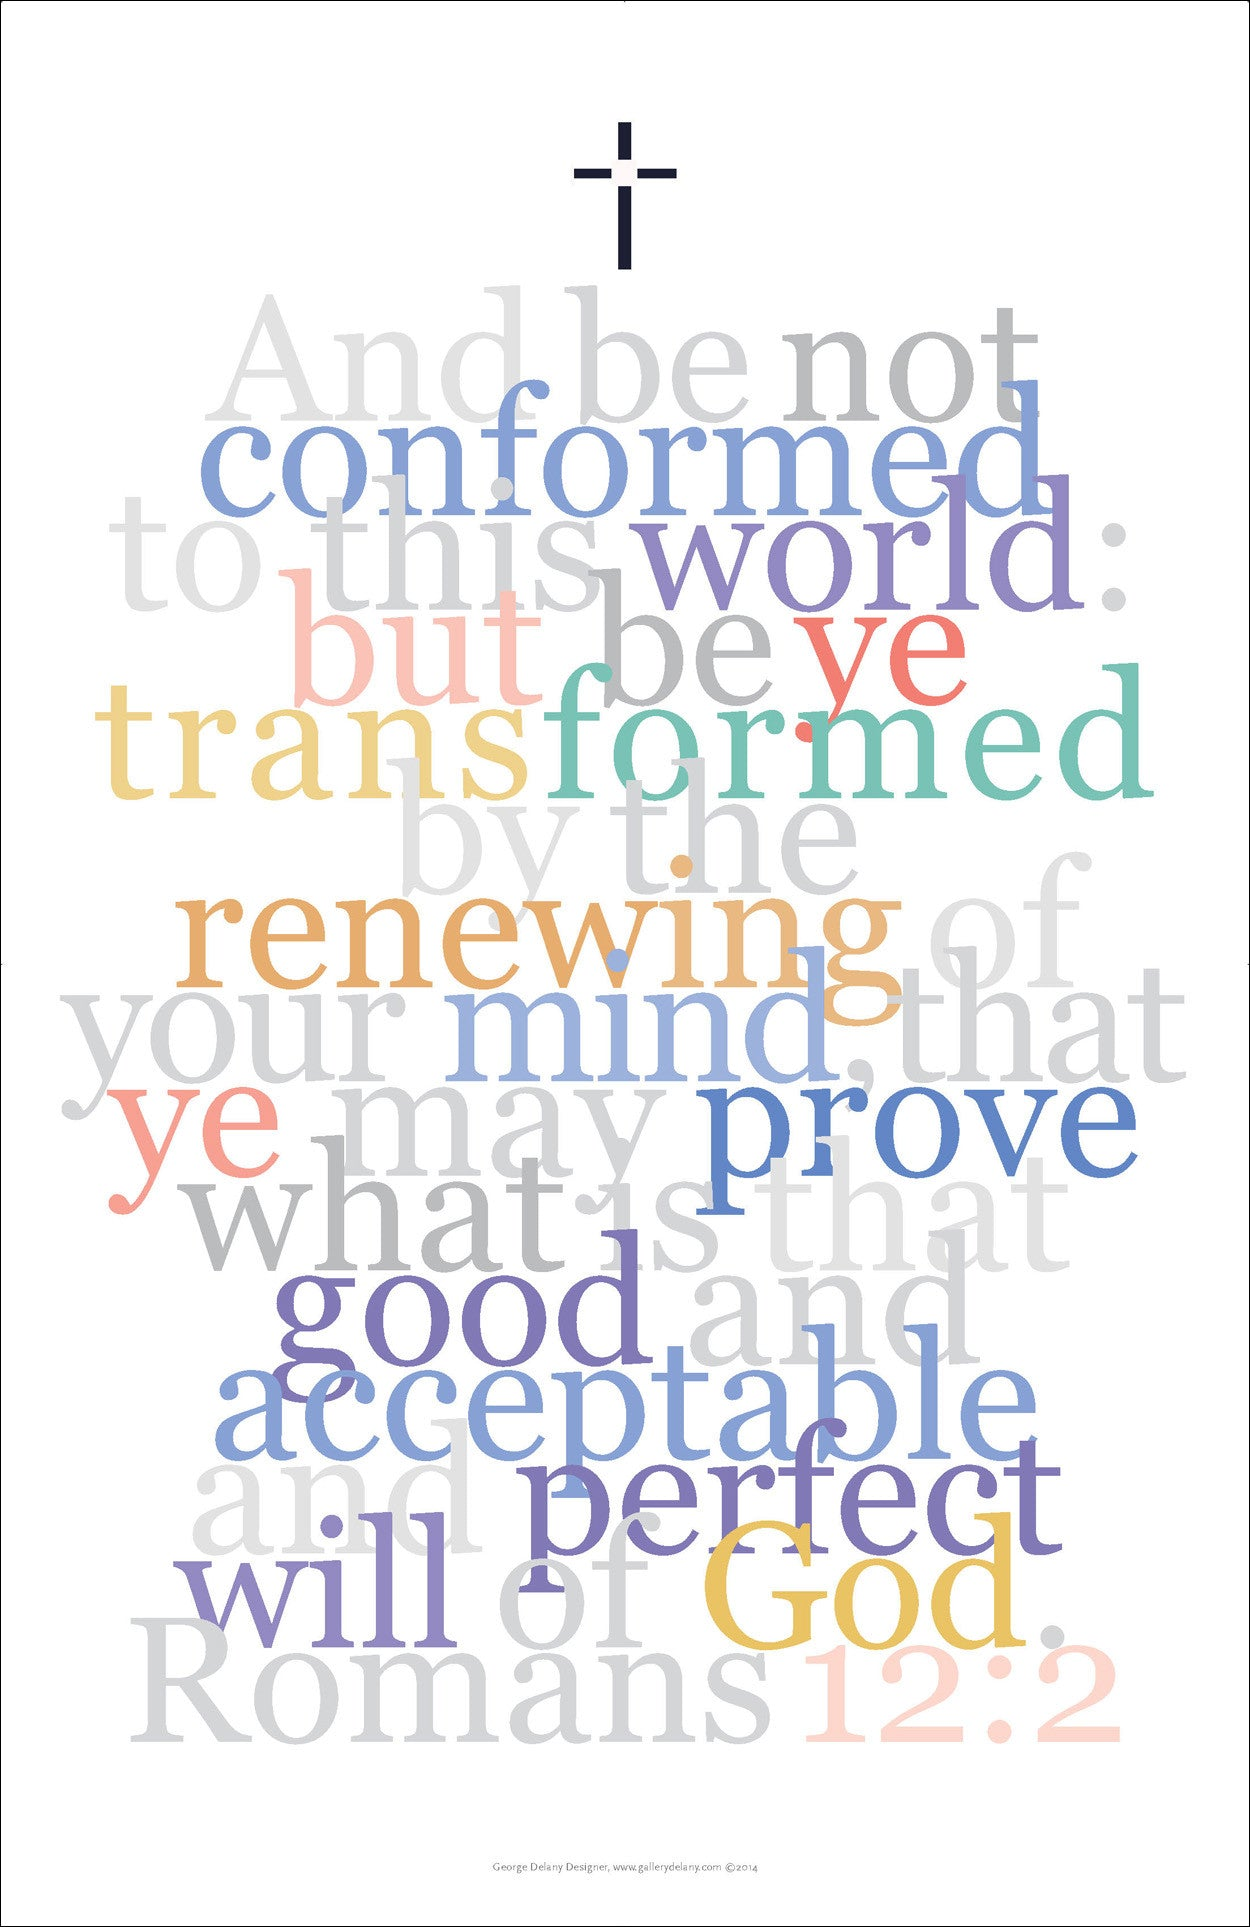 "Biblical Digital Art Print #14, Romans 12:2, ""And be not conformed to this world..."""